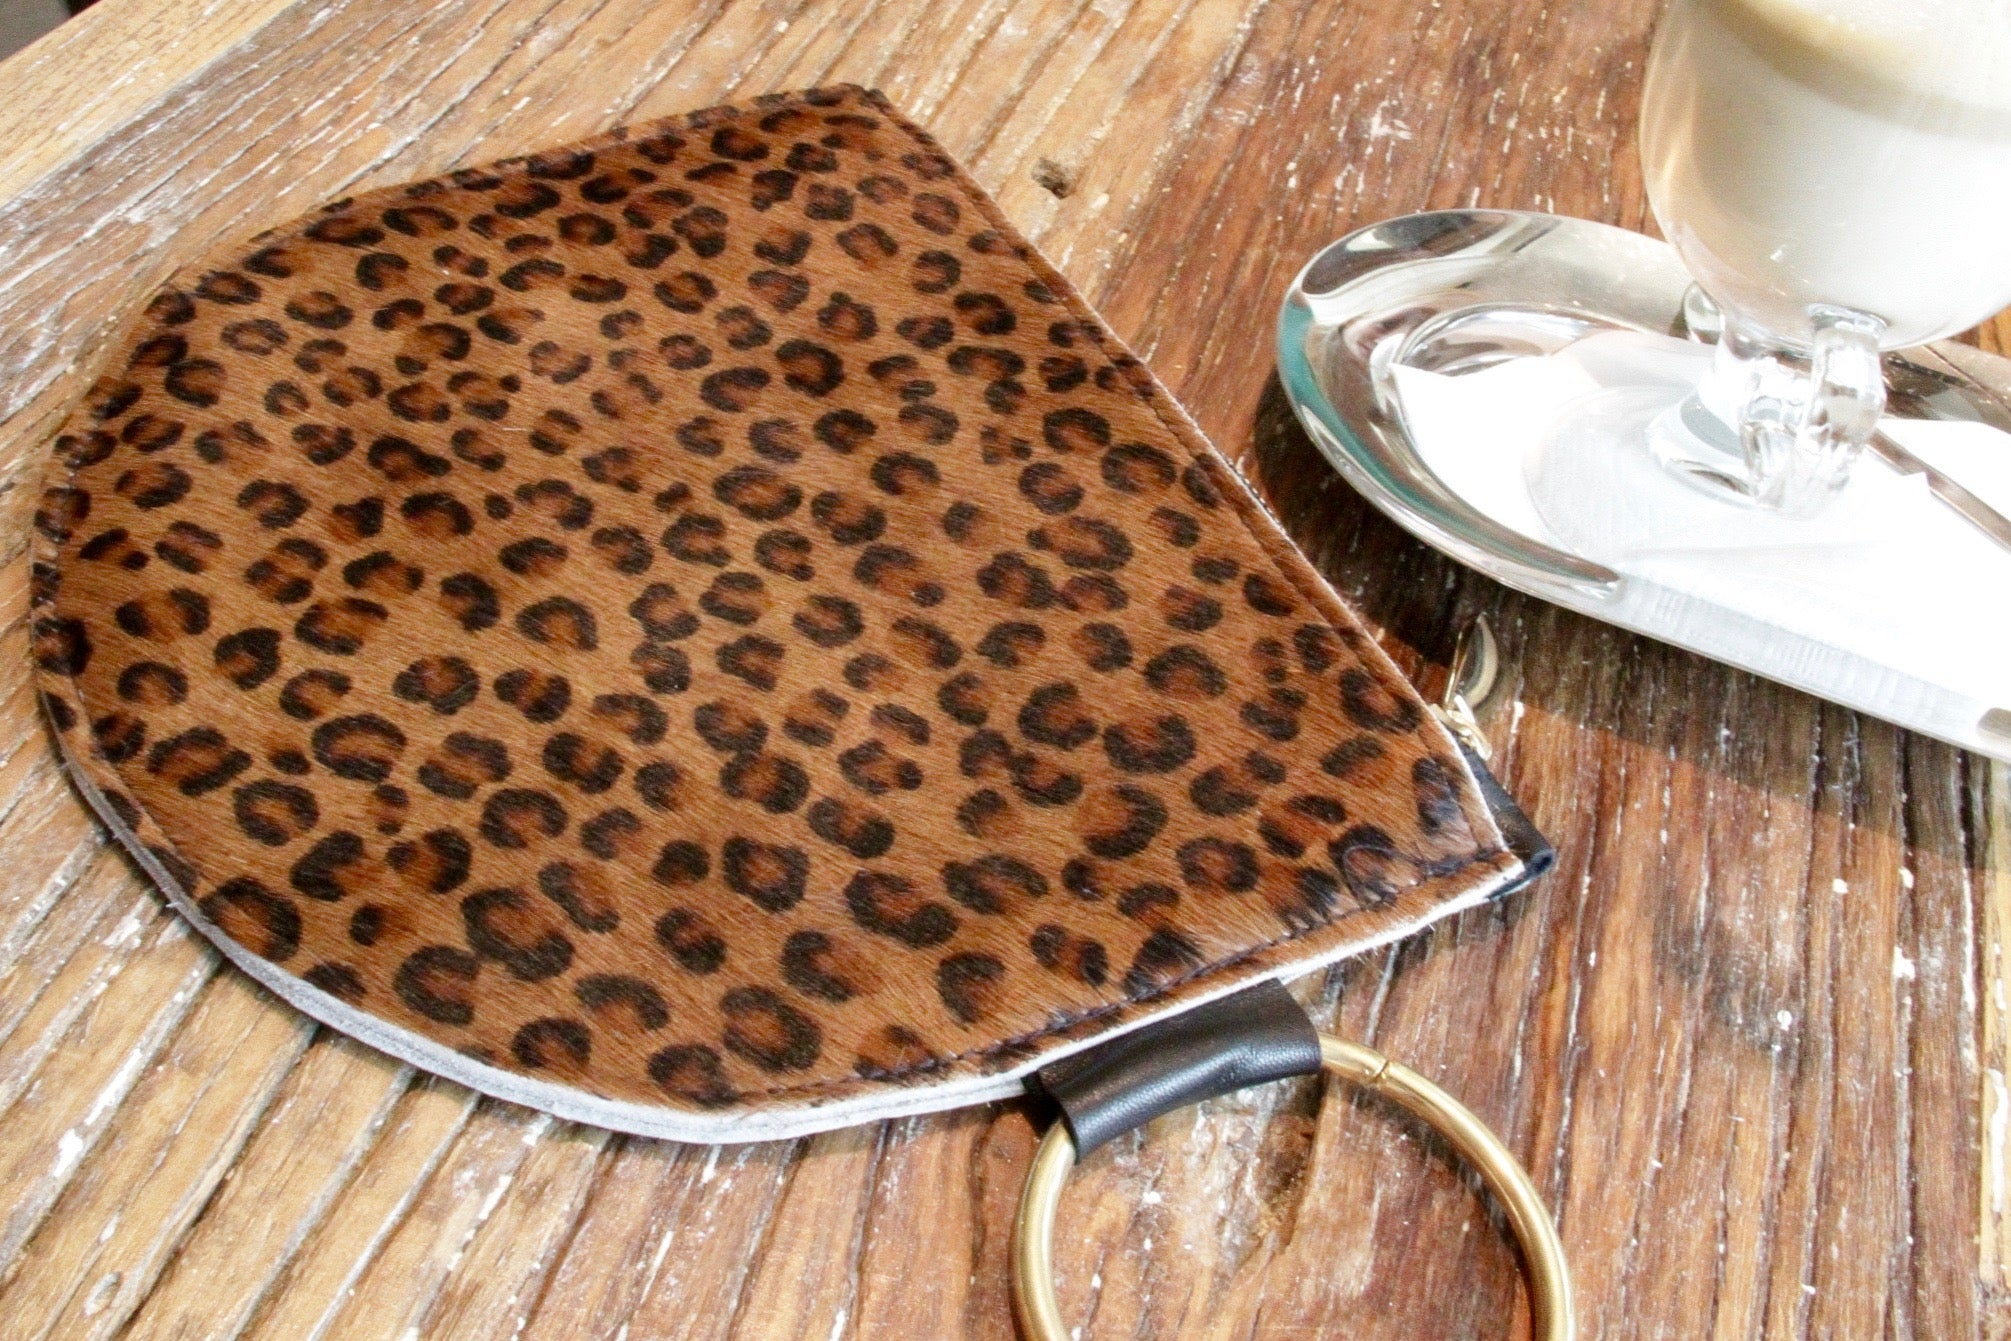 Leopard print pony leather clutch bag with hoop handle